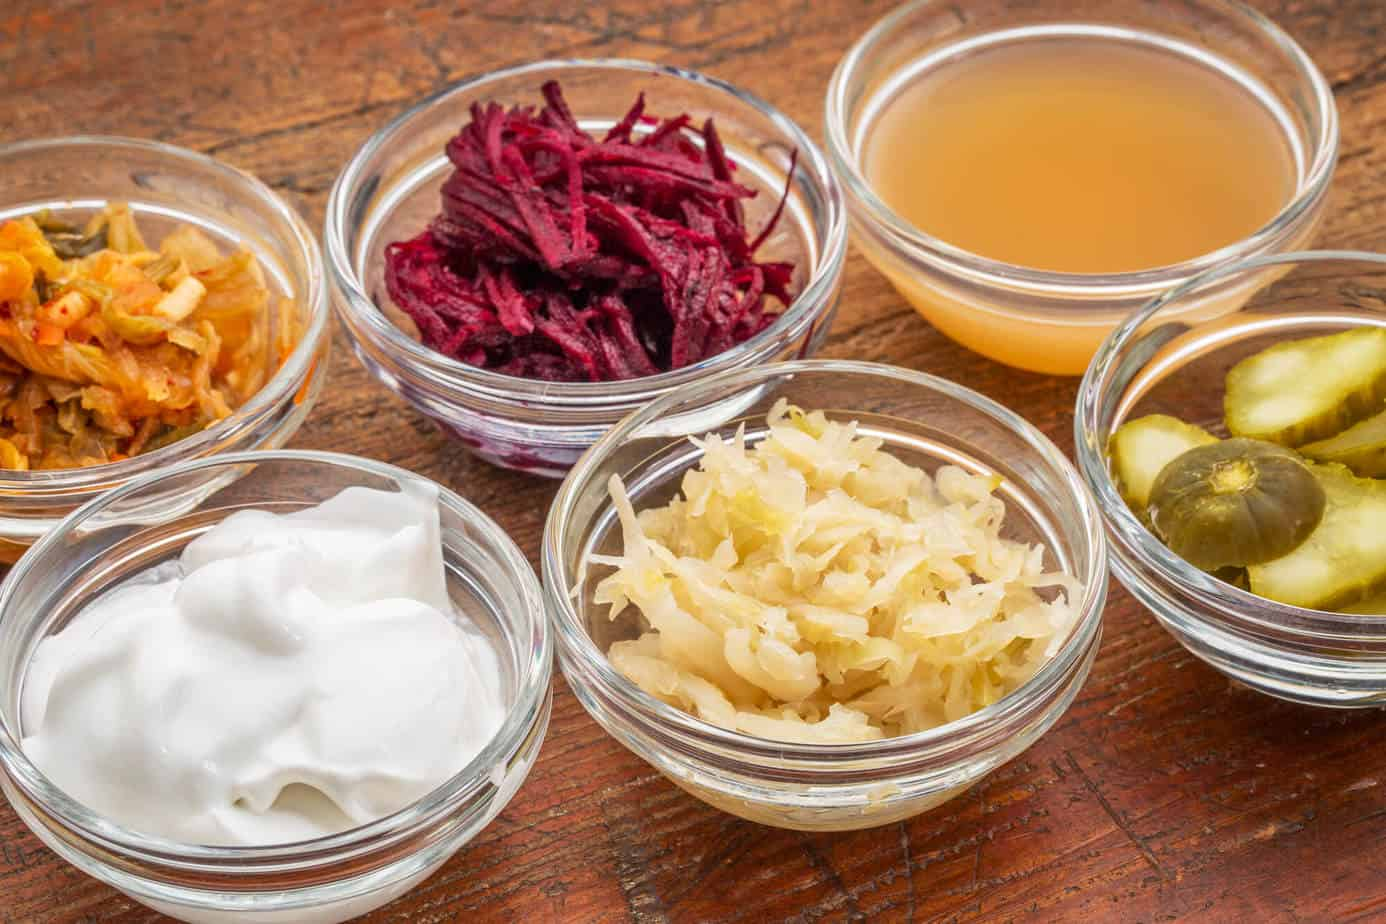 Fermented foods provide probiotics that improve your gut health.